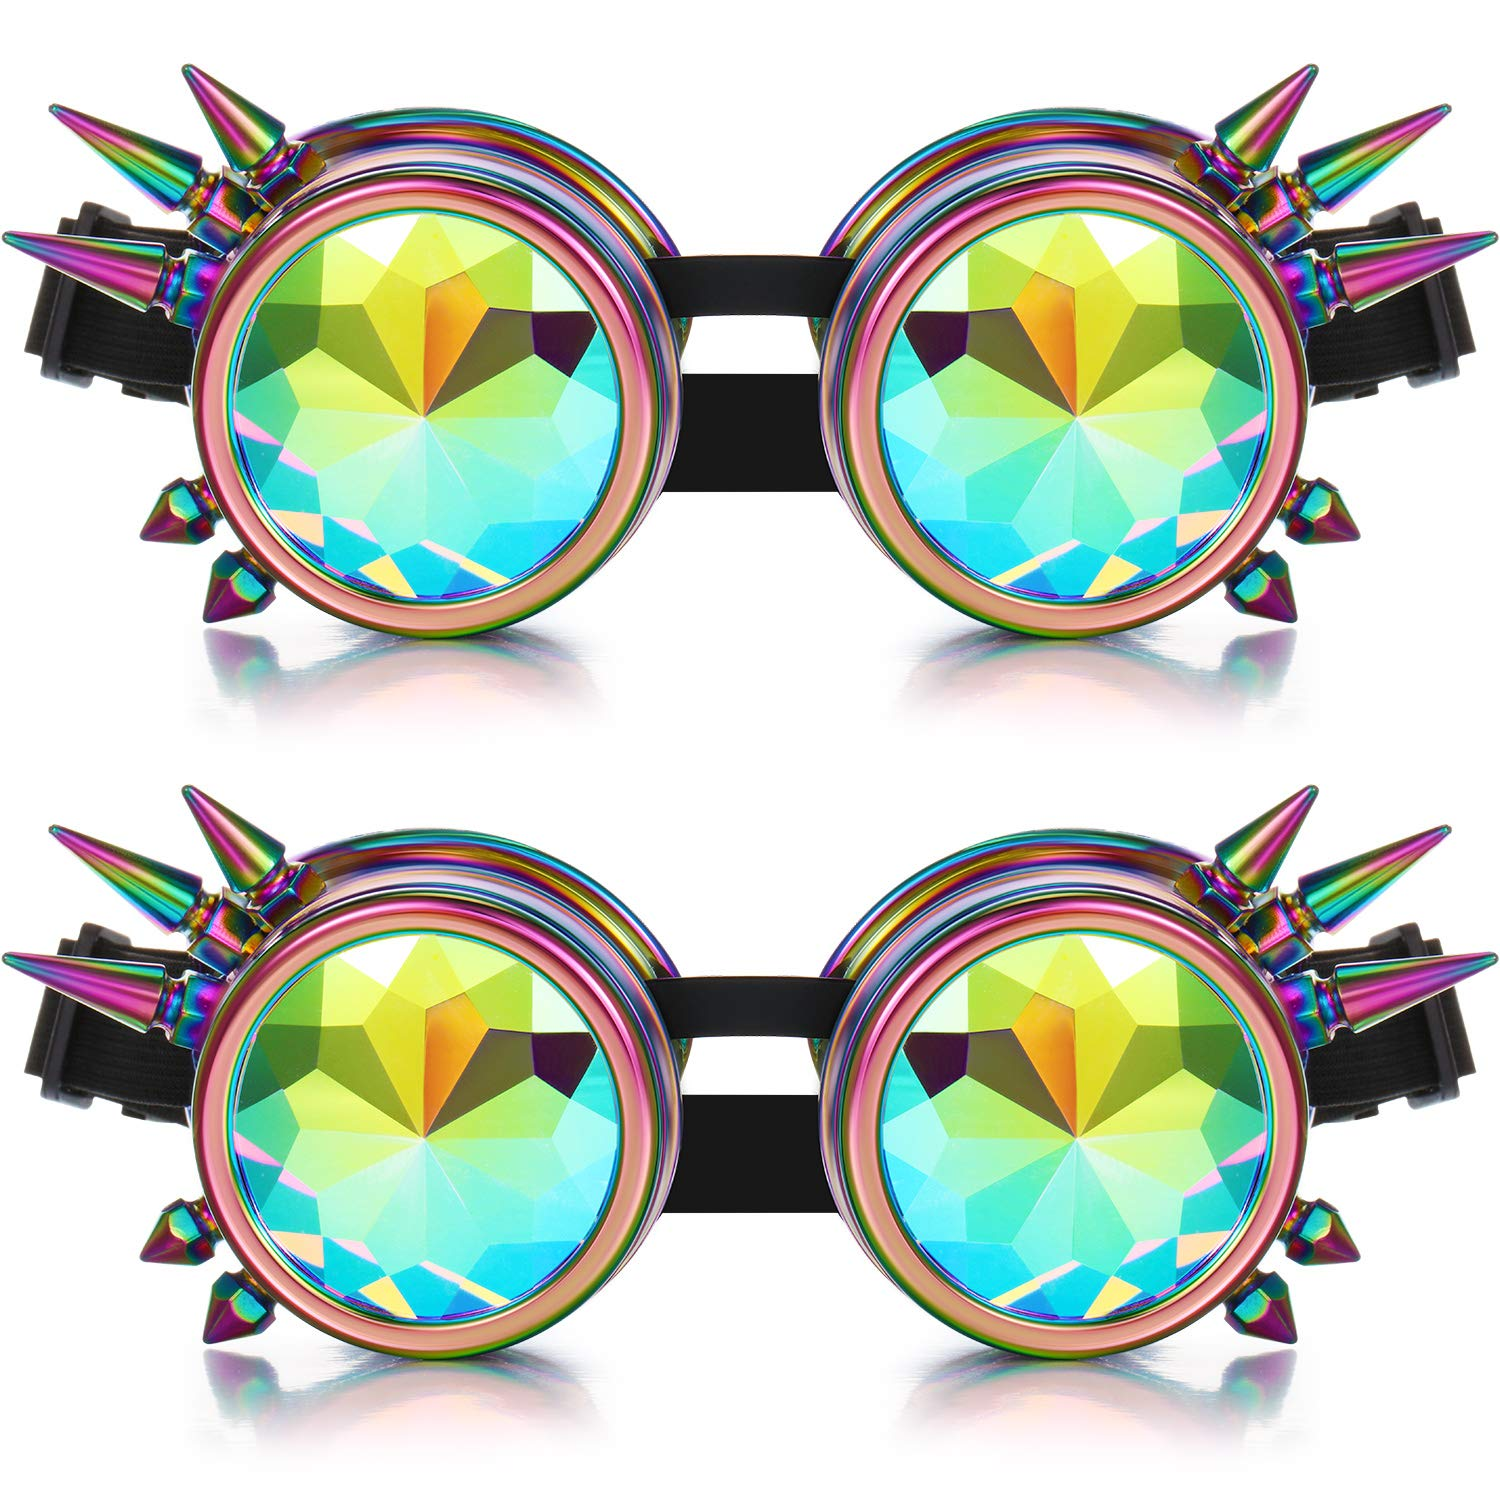 2 Pairs Kaleidoscope Steampunk Rave Goggles with Rainbow Lens (Spiked Design) by Frienda